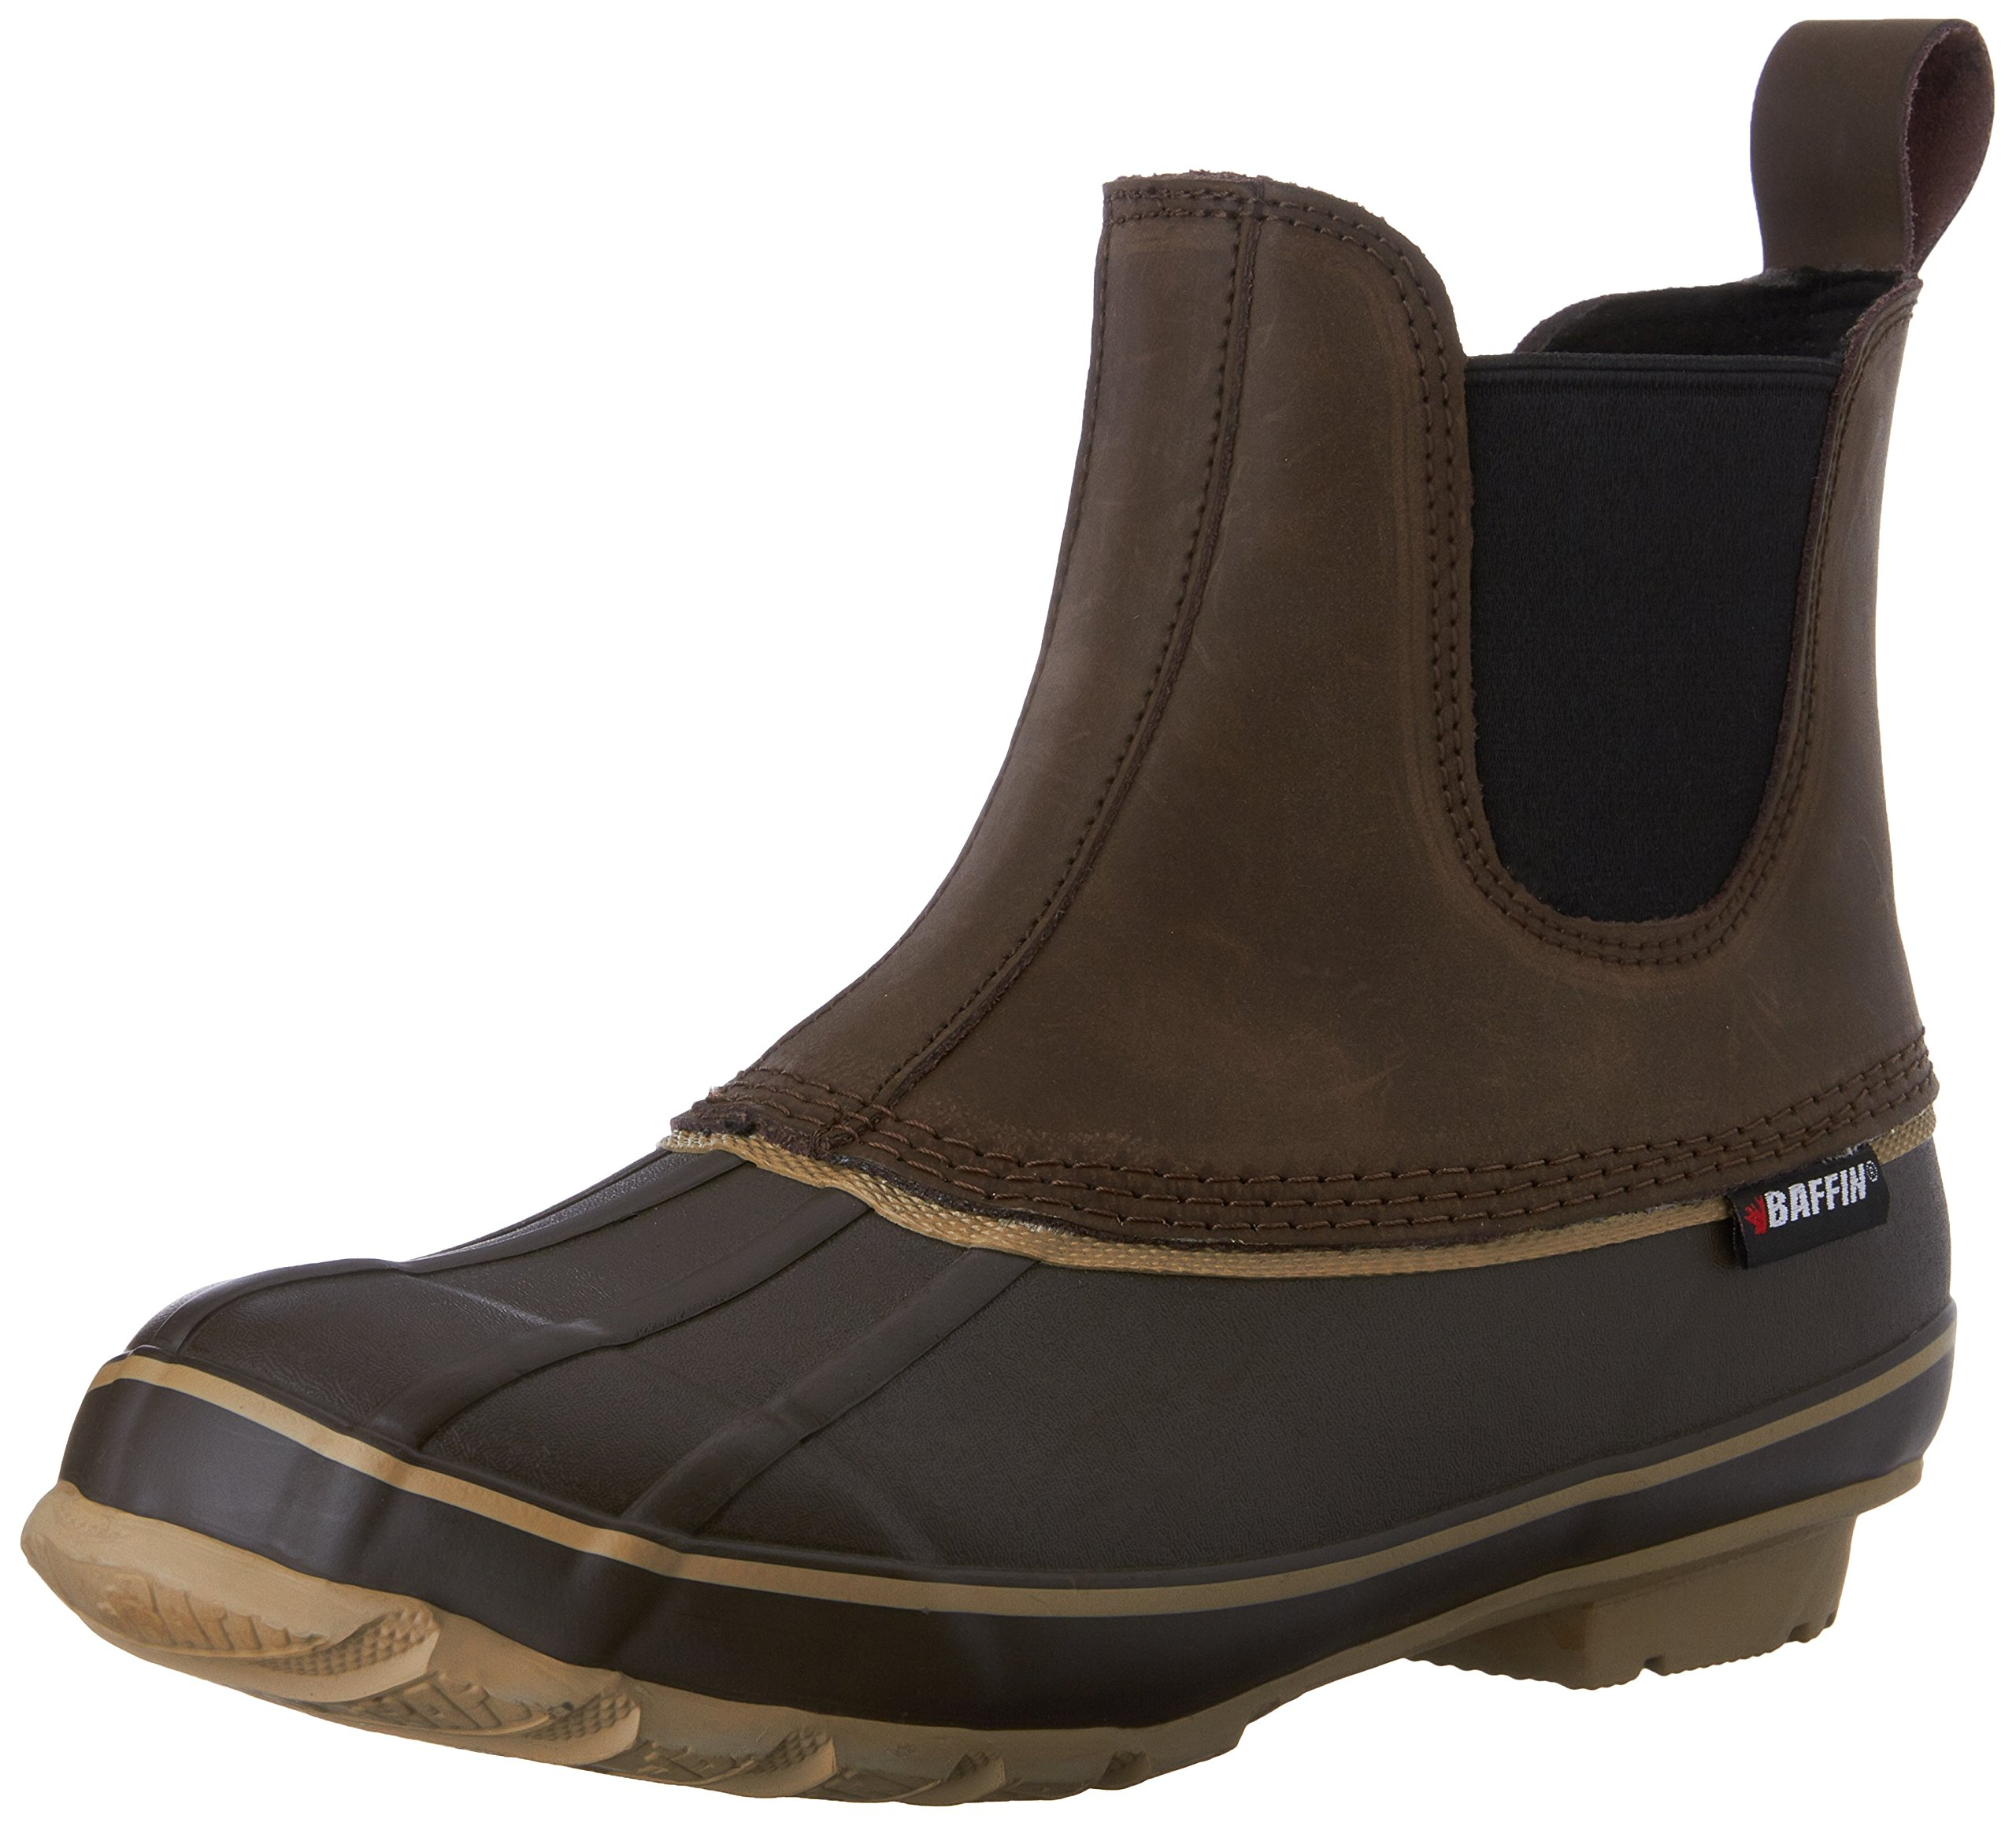 Baffin Men's Bobcat Rain Boot,Brown,10 M US by Baffin